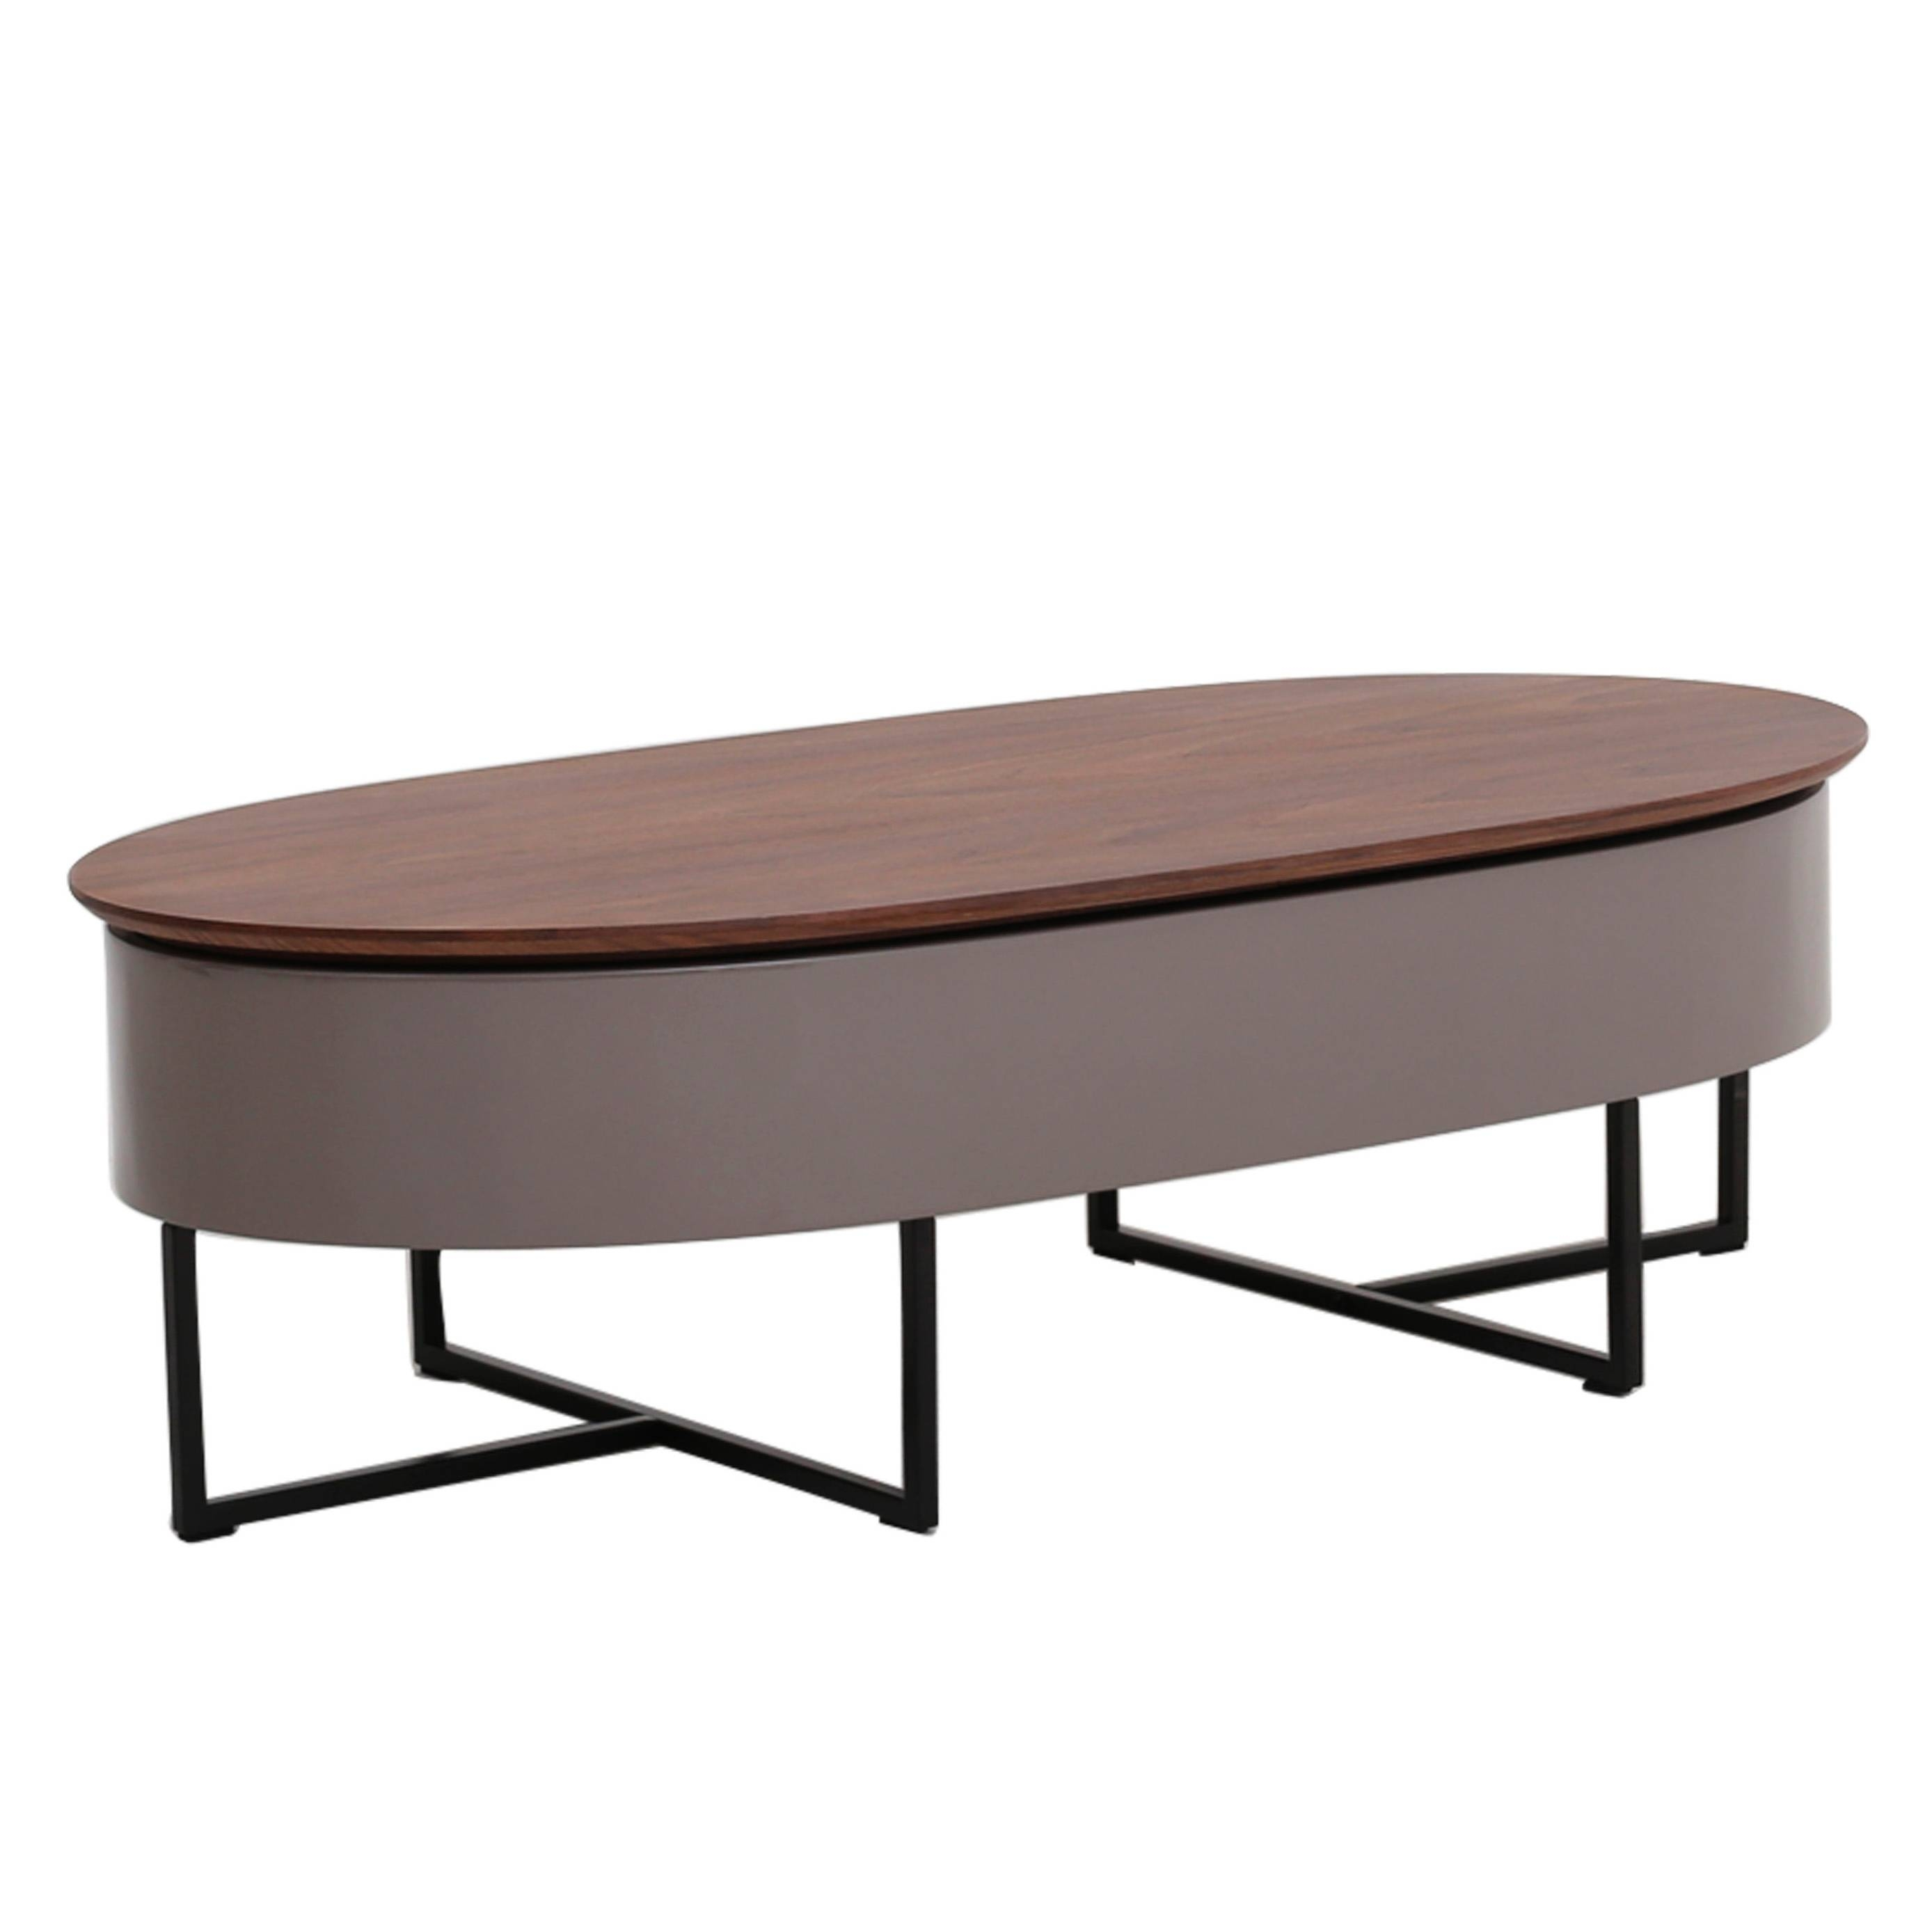 1030001 – Npd – New Pacific Direct Furniture | Stylish Throughout Oval Walnut Coffee Tables (View 13 of 30)